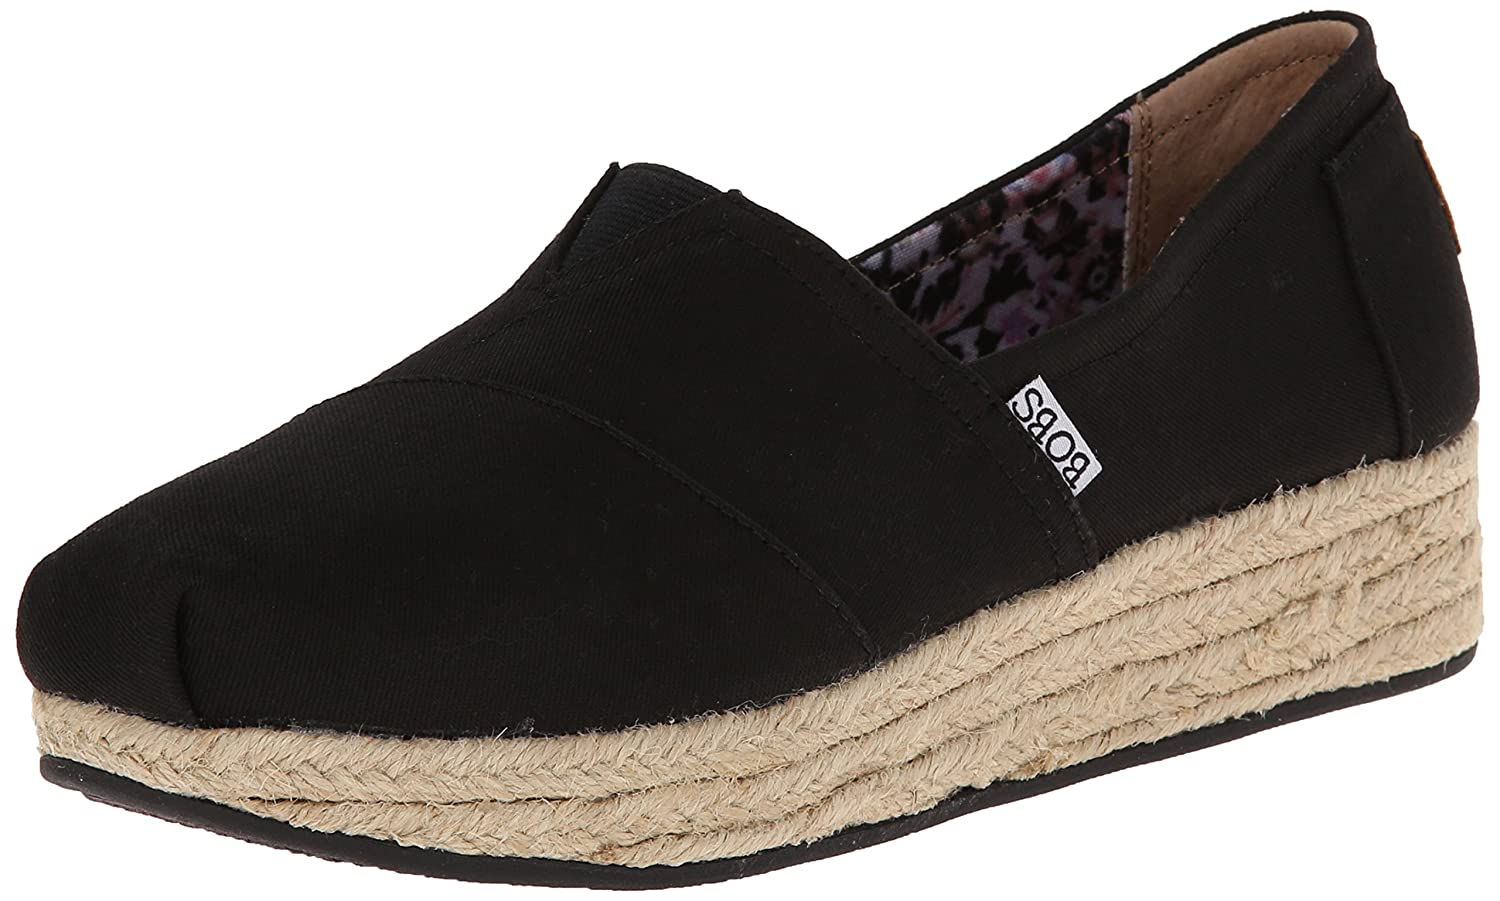 Skechers BOBS from Women's Highlights Flexpadrille Wedge B00M93JFUC 8 M US|Black Canvas